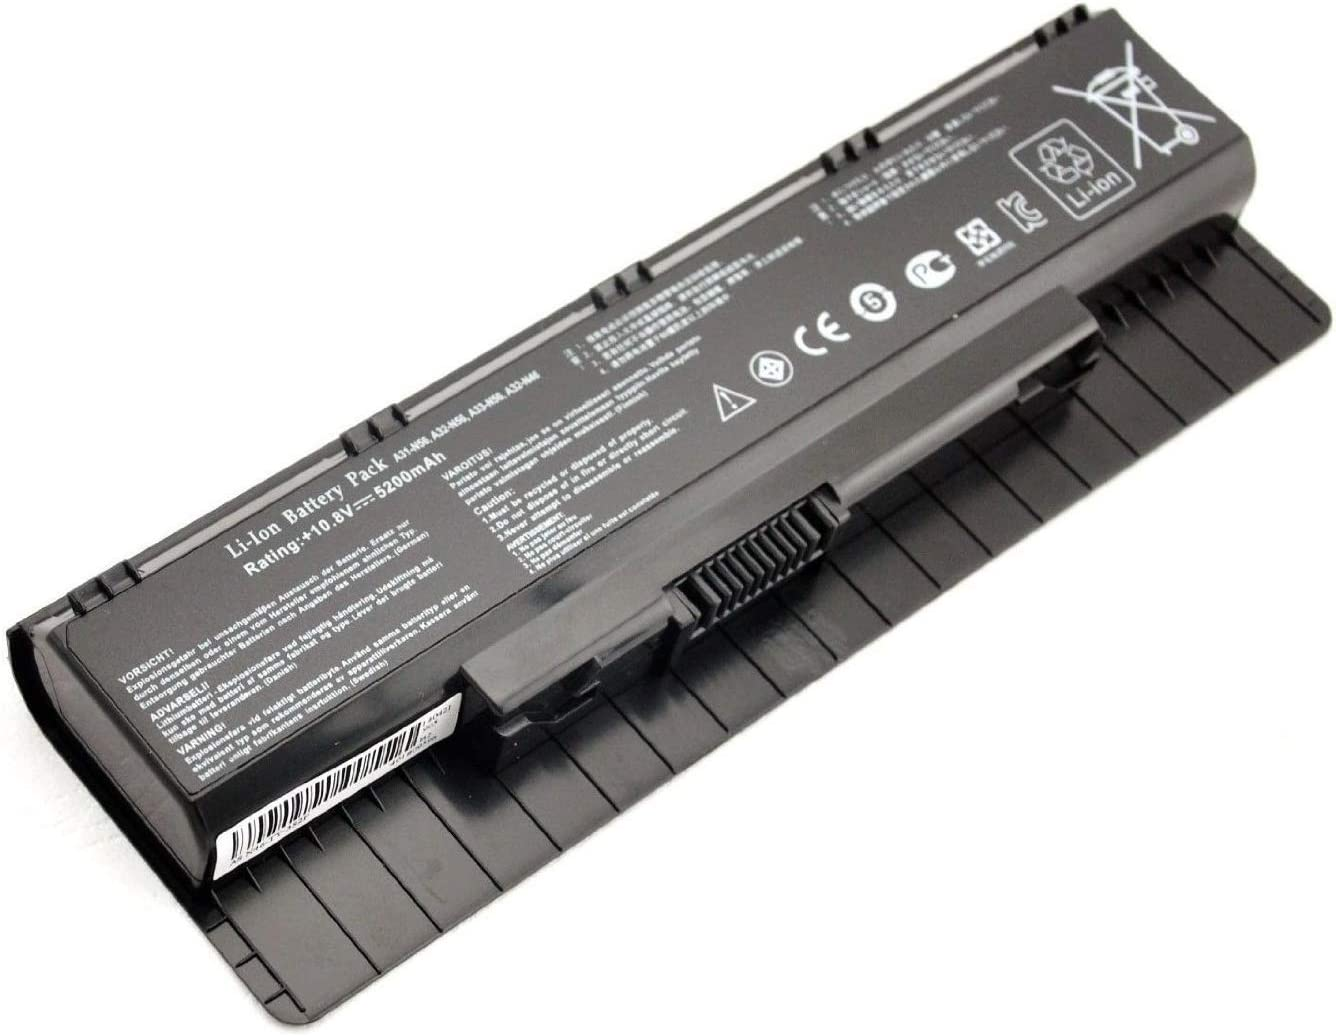 SOLICE New A31-N56 A32-N56 A33-N56 Laptop Battery for Asus A32-N56 N56 N56V N56J N56VZ N56D N56DP N56J Series [10.8V 56Wh/5200mAh]